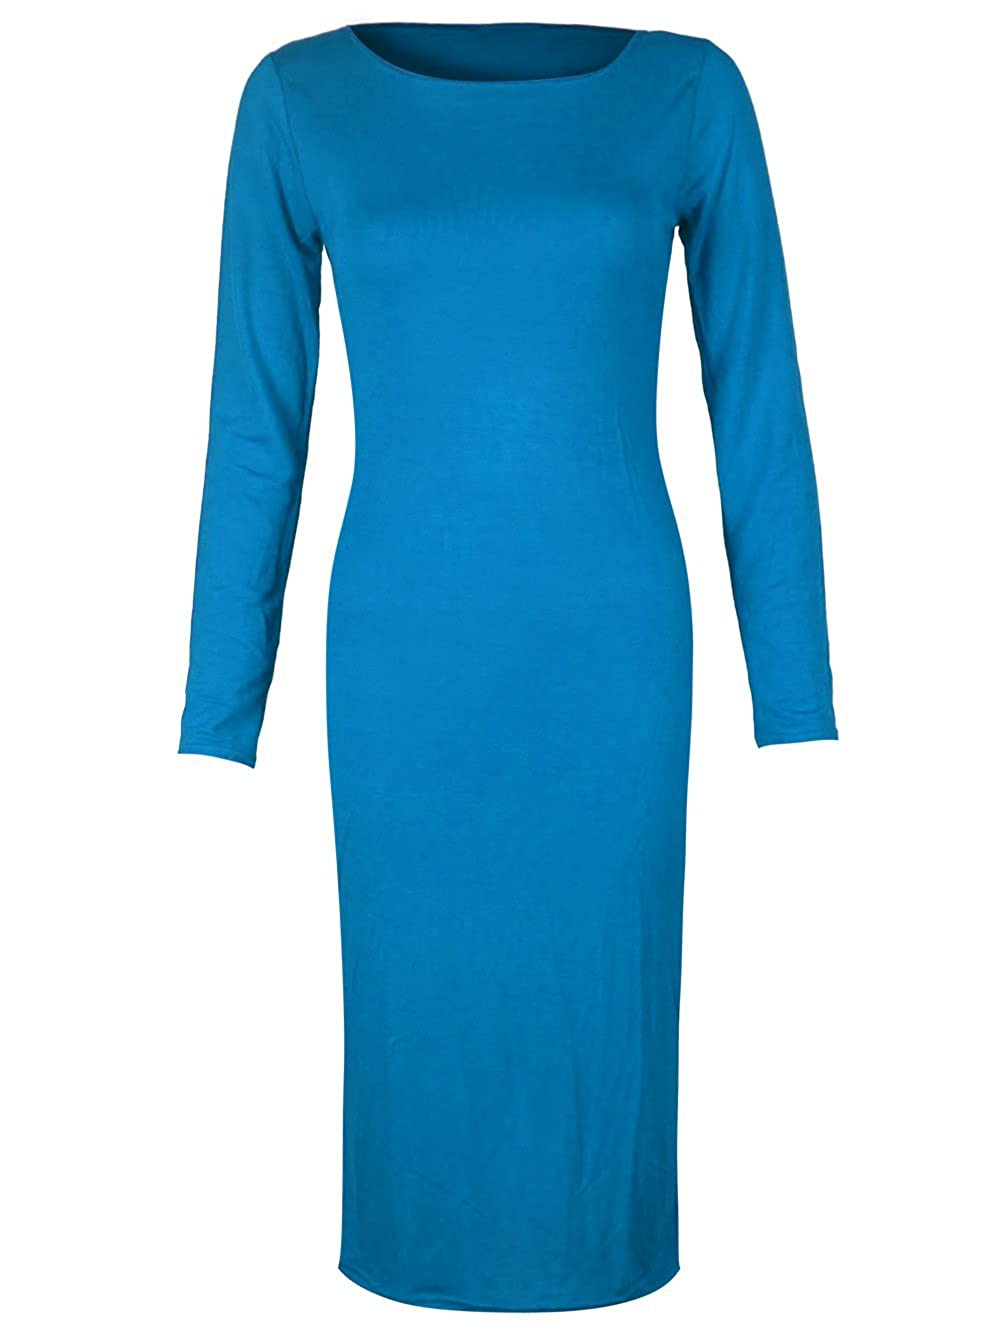 ML, Turquoise Womens Long Sleeve Scoop Neck Midi Dress Candy Girl Clothing